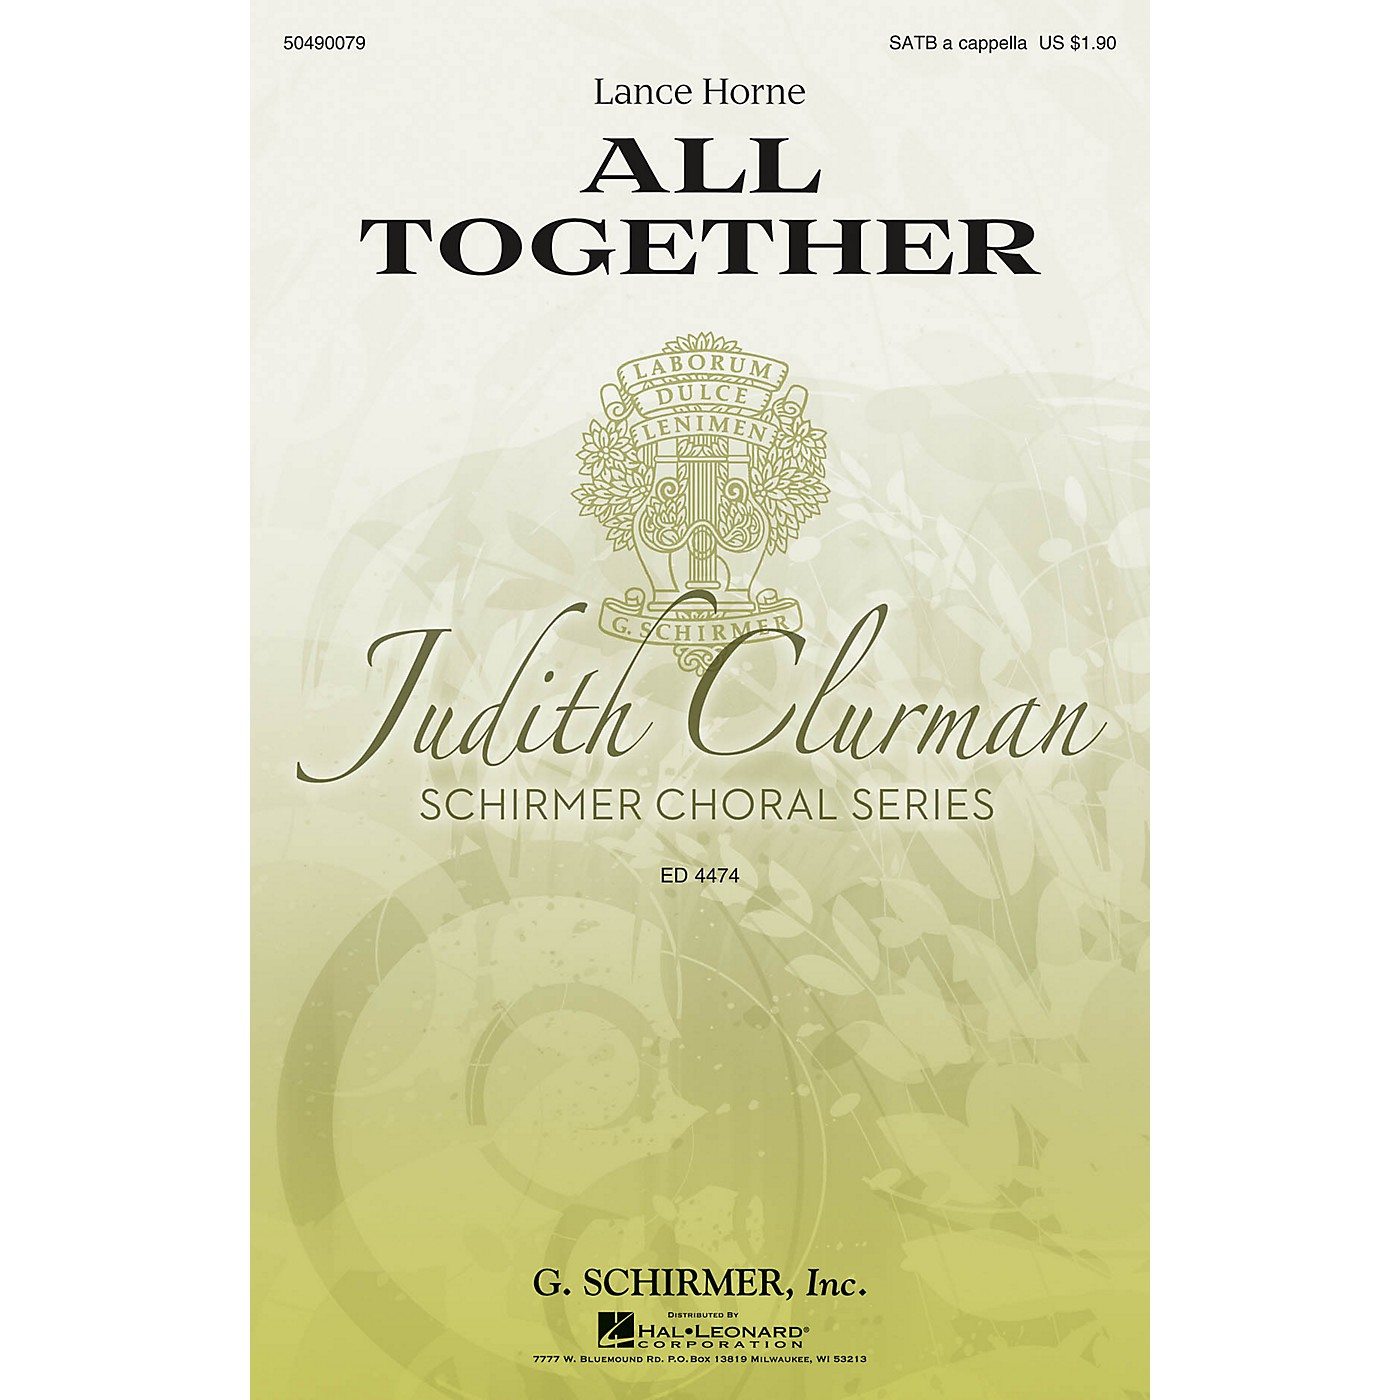 G. Schirmer All Together (Judith Clurman Choral Series) SATB a cappella composed by Lance Horne thumbnail